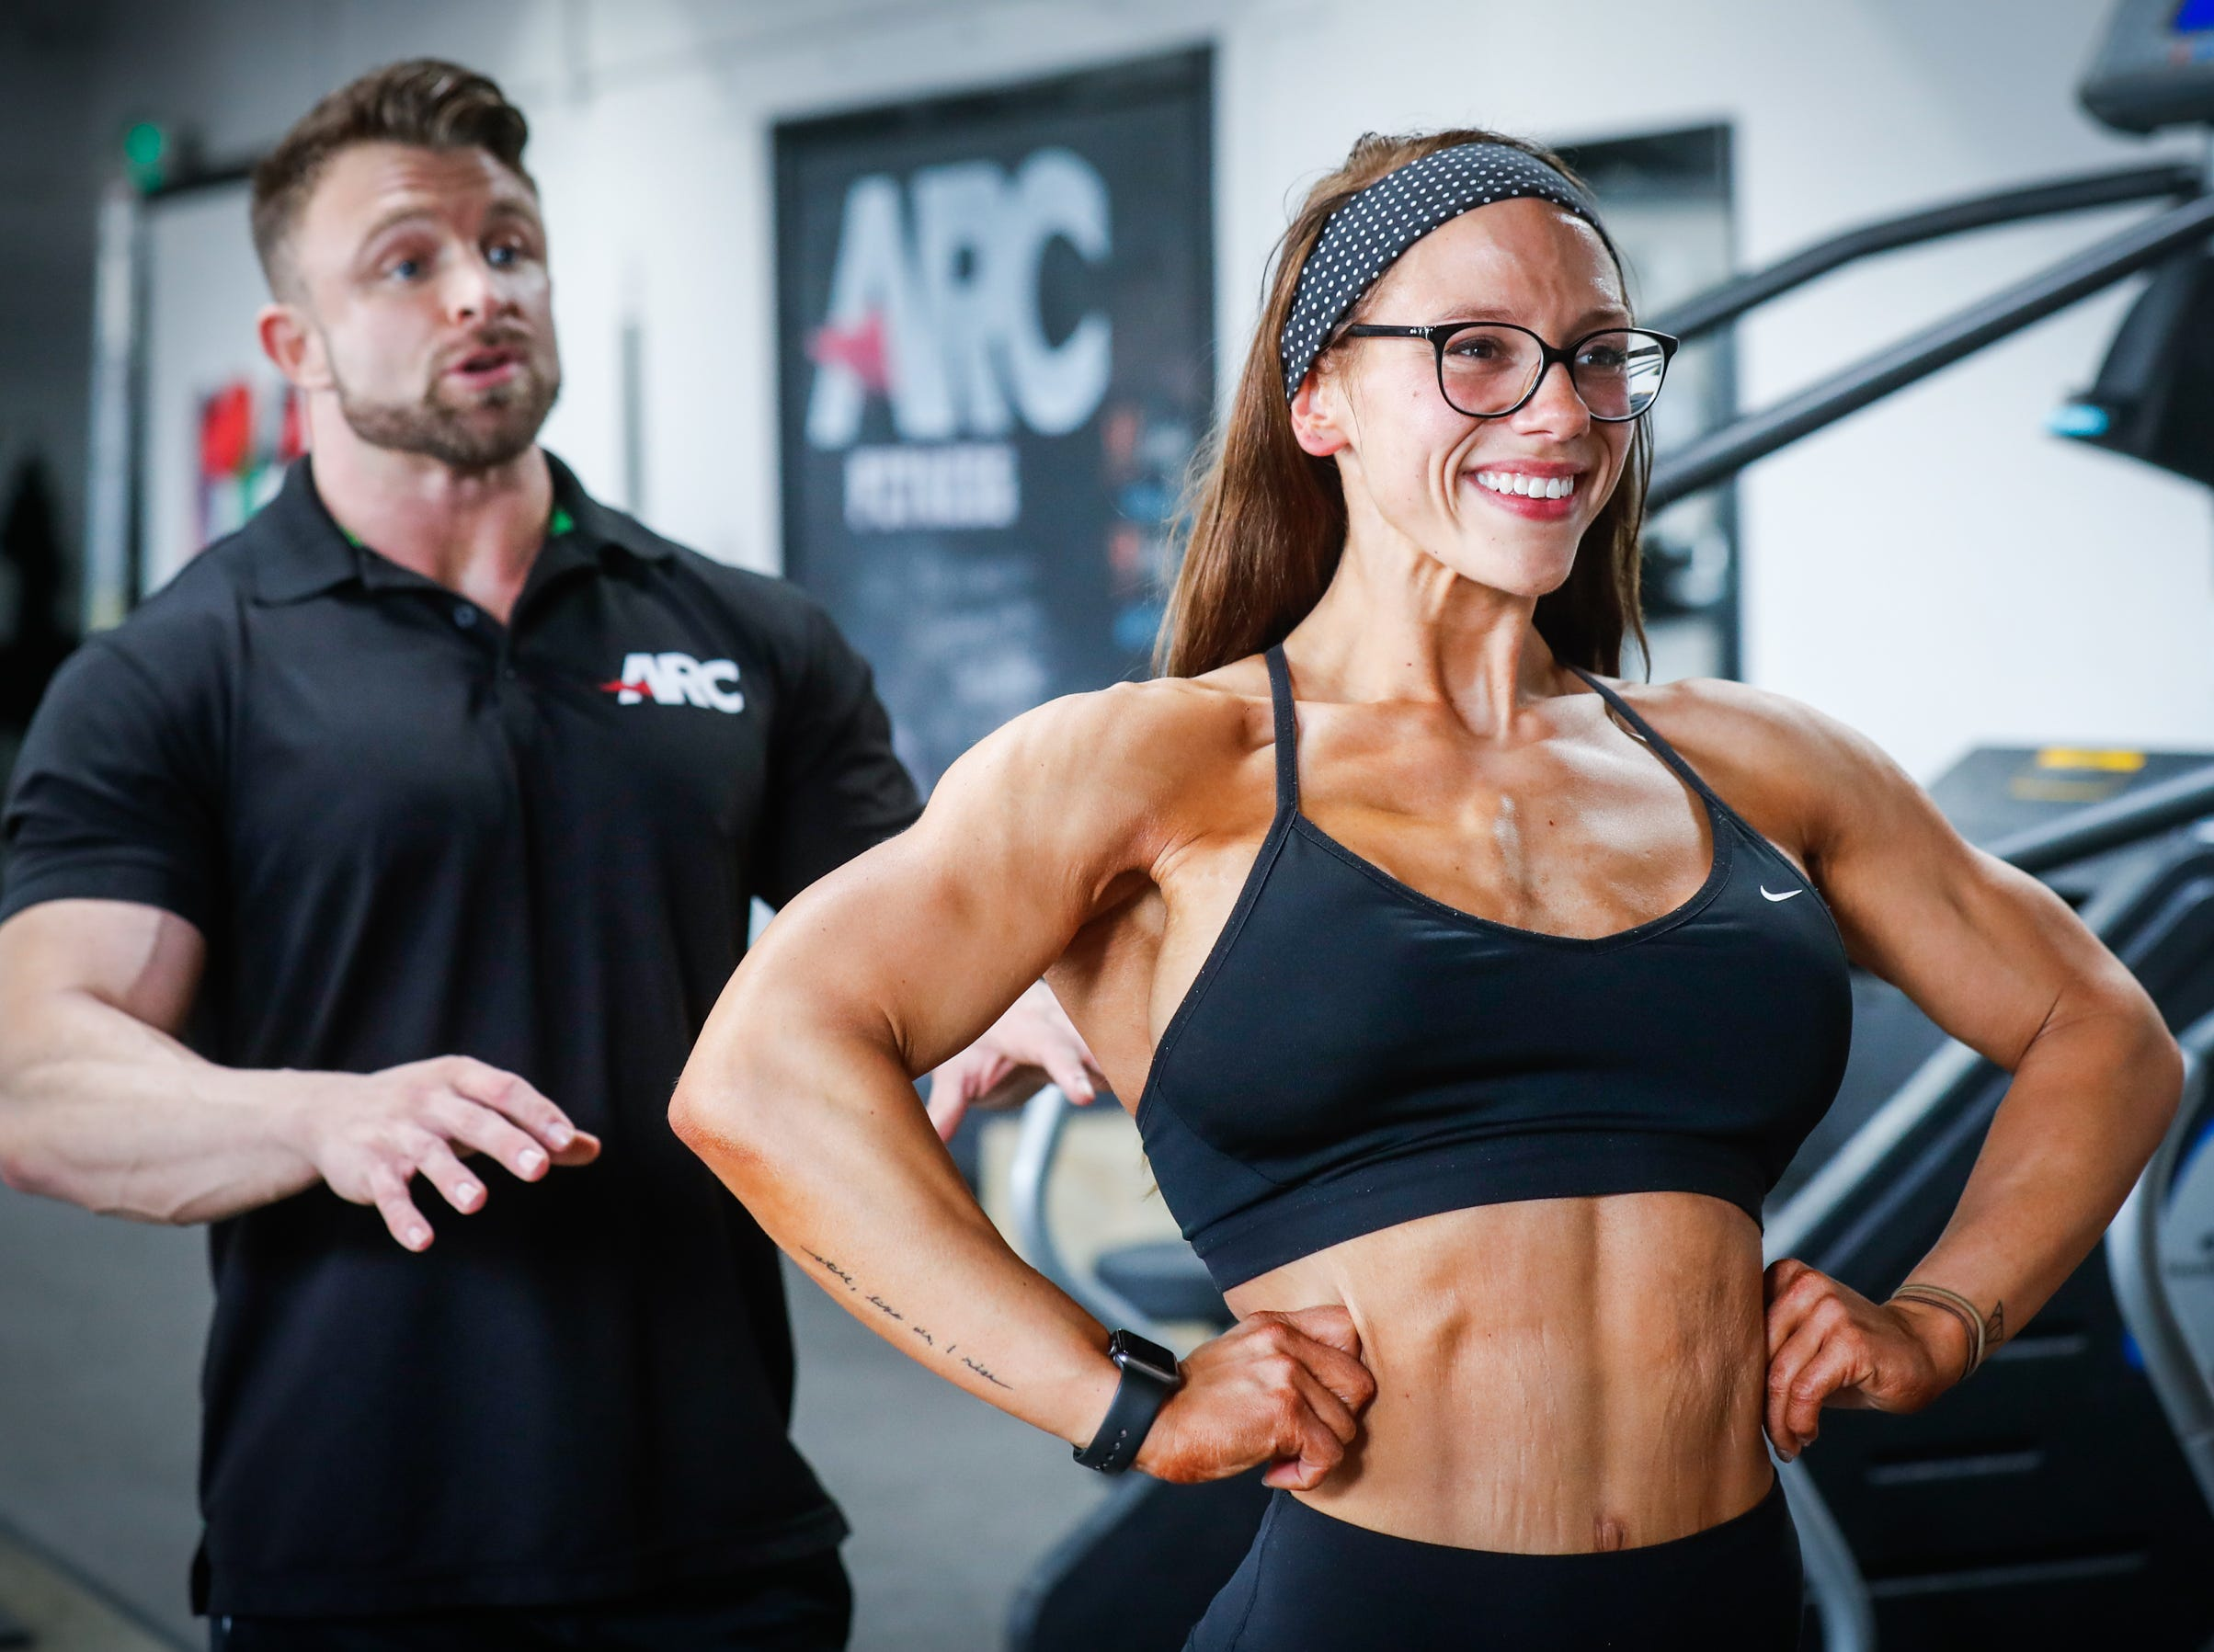 Rachael Heffner practices a Wonder Woman bodybuilding pose under the supervision of Personal Trainer and Body Building Coach Adam Cayce at ARC Fitness Indy on Tuesday, Aug. 21, 2018. Heffner went from weighing 300 pounds in 2011 to becoming the 2018 NPC Indiana State Championships Women's Open Physique Overall Champion.